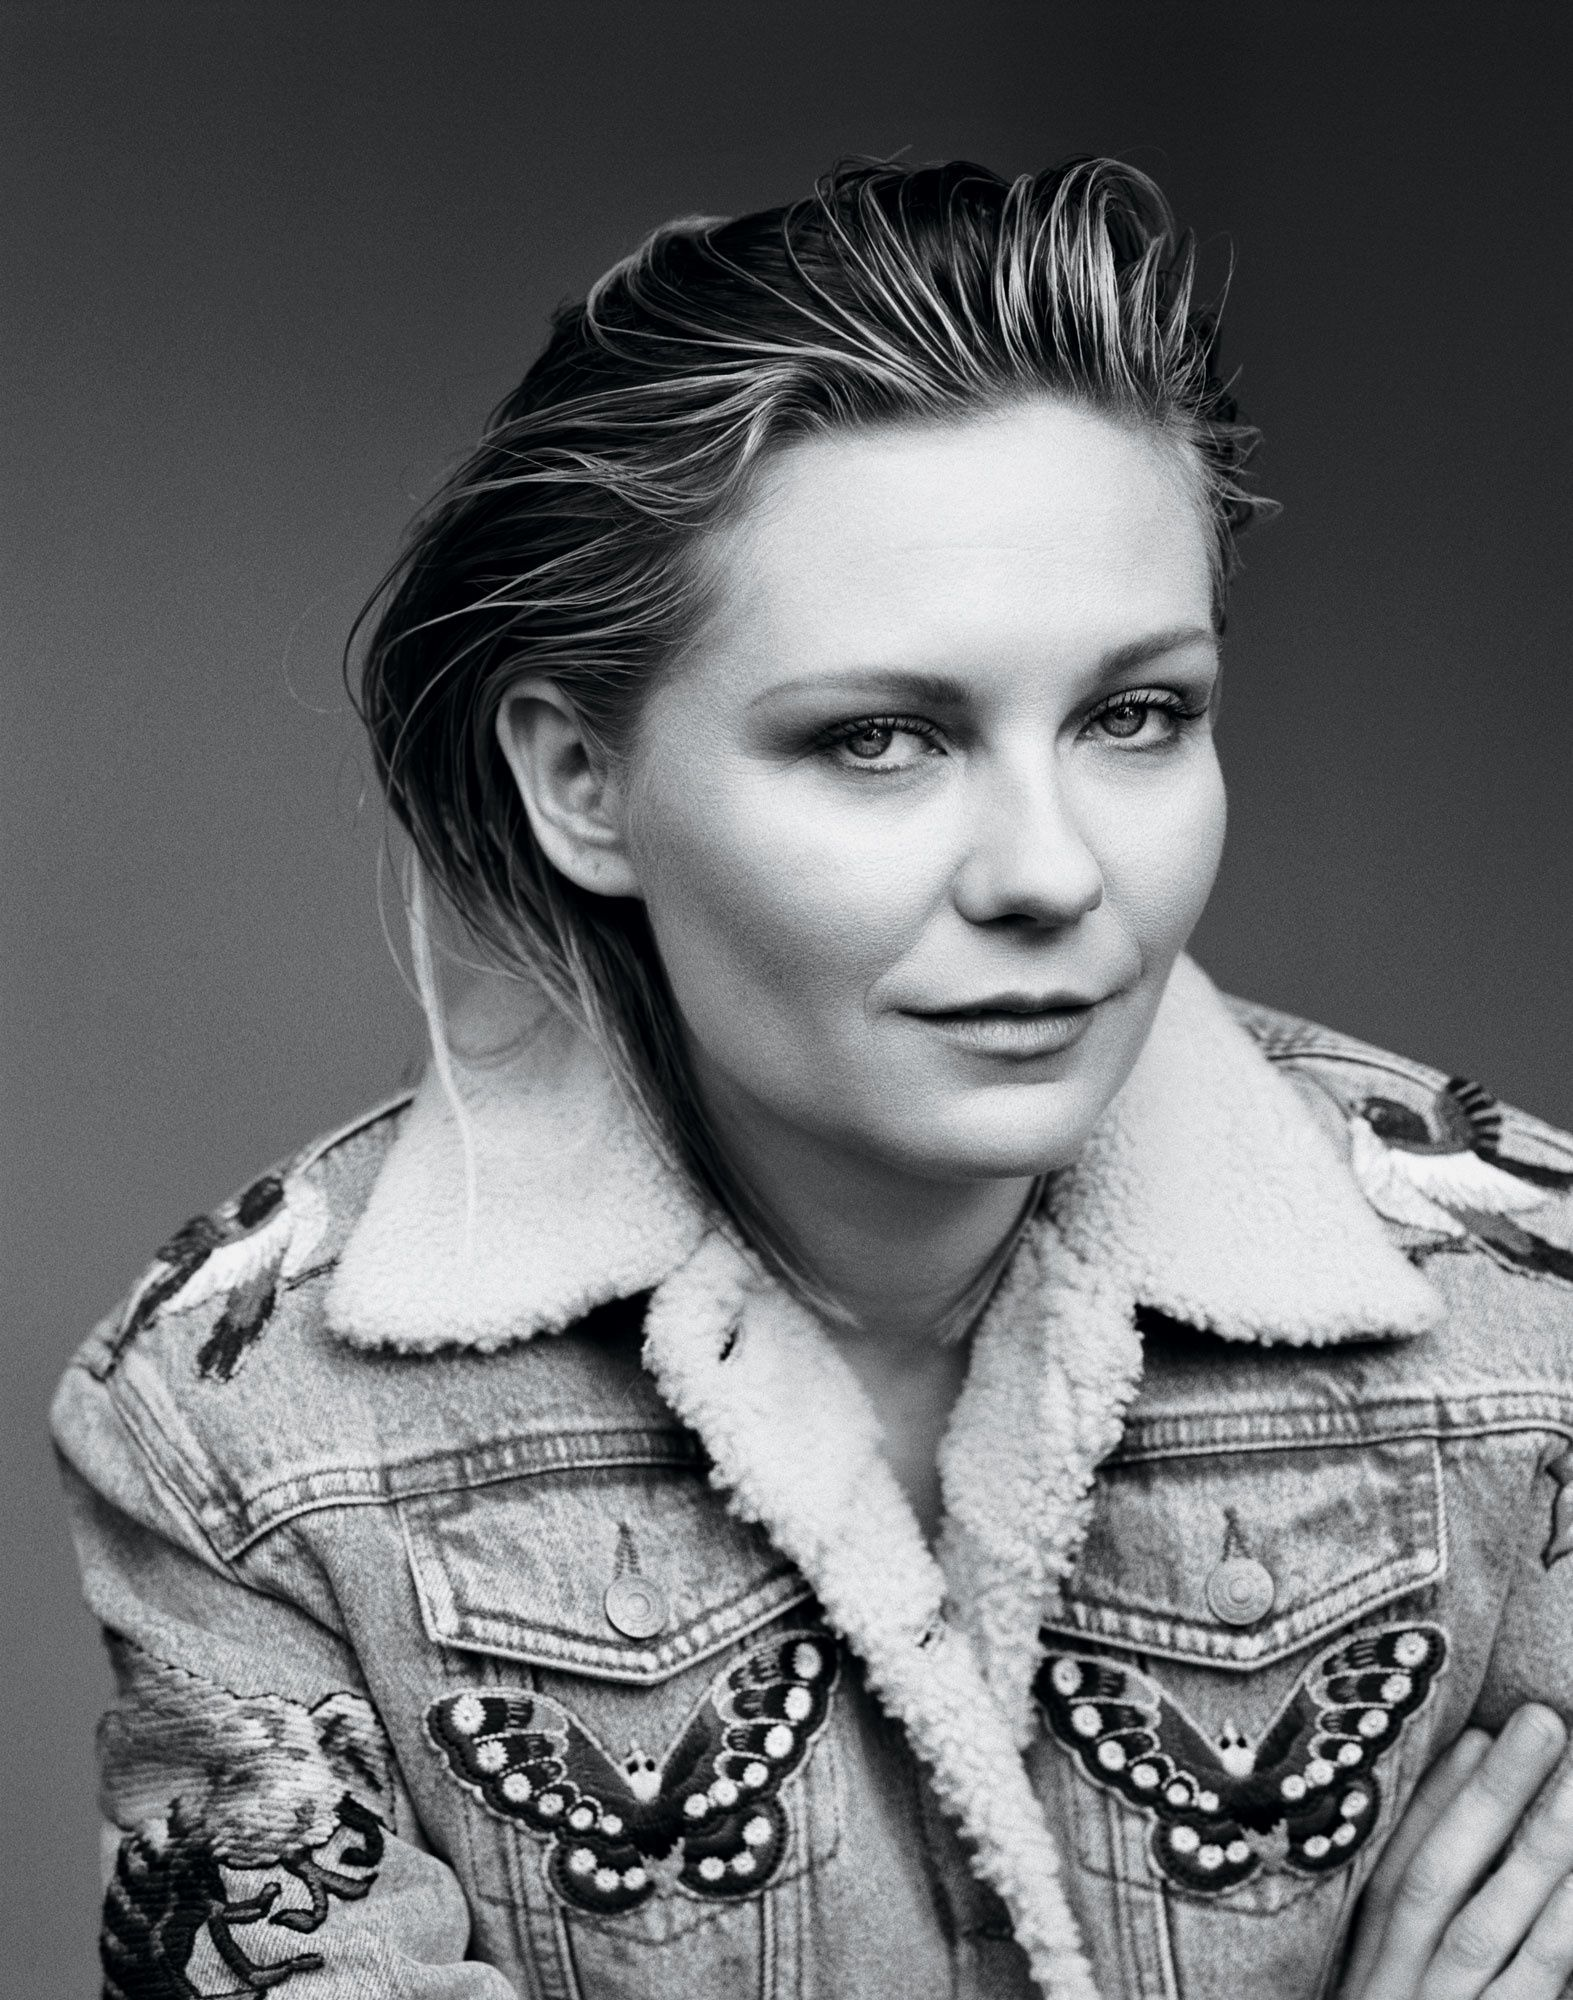 Black and white portrait of Kirsten Dunst in denim jacket.